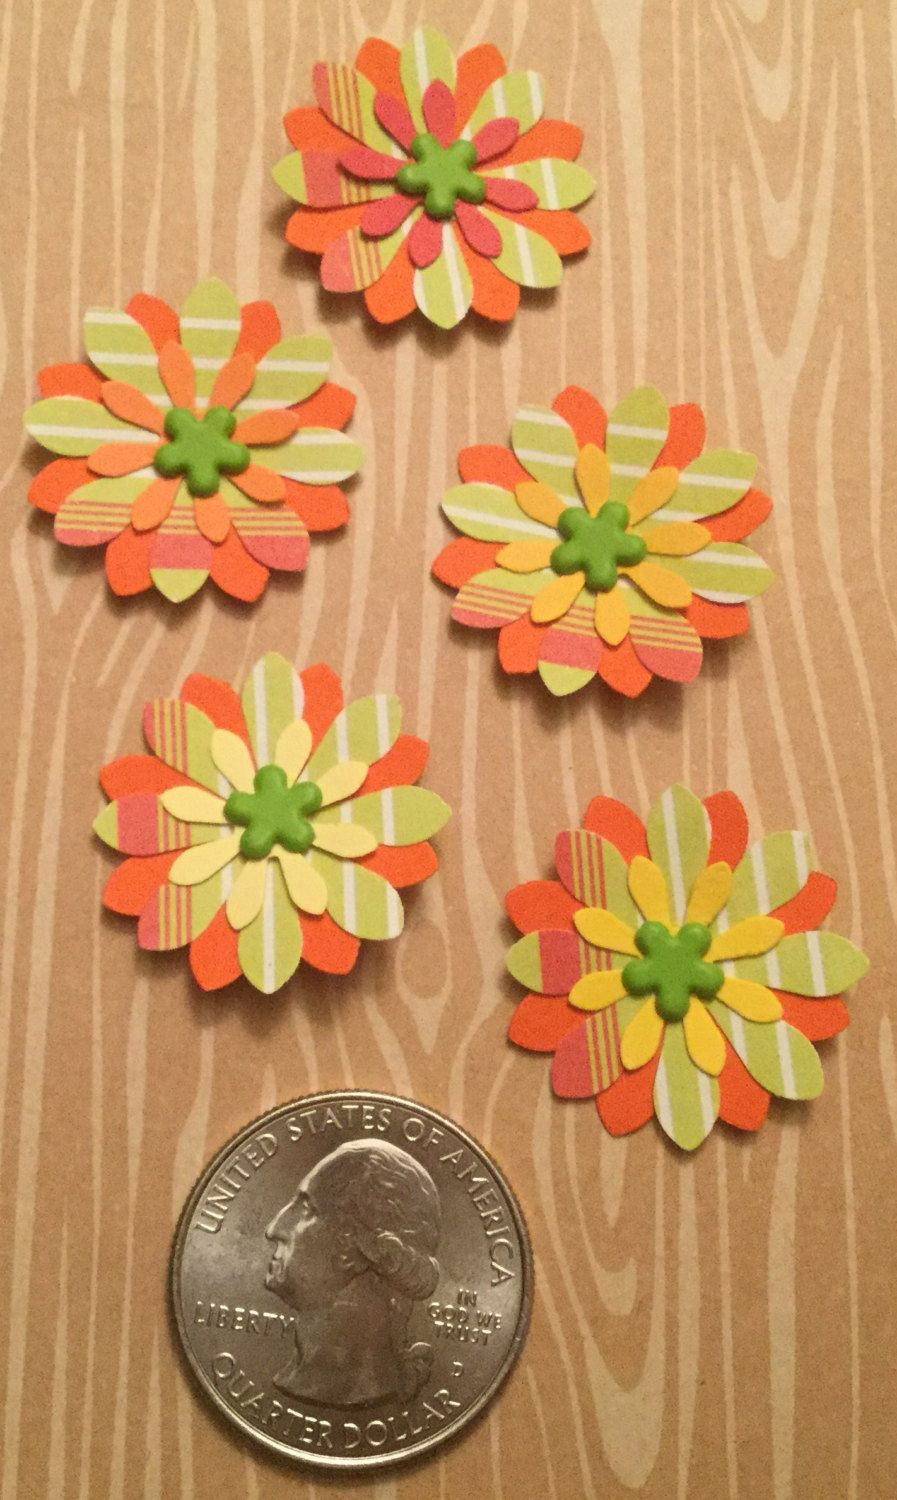 Handmade Small Paper Flowers 5 Pack By Cemfloral On Etsy Paper Flowers Cards Handmade Handmade